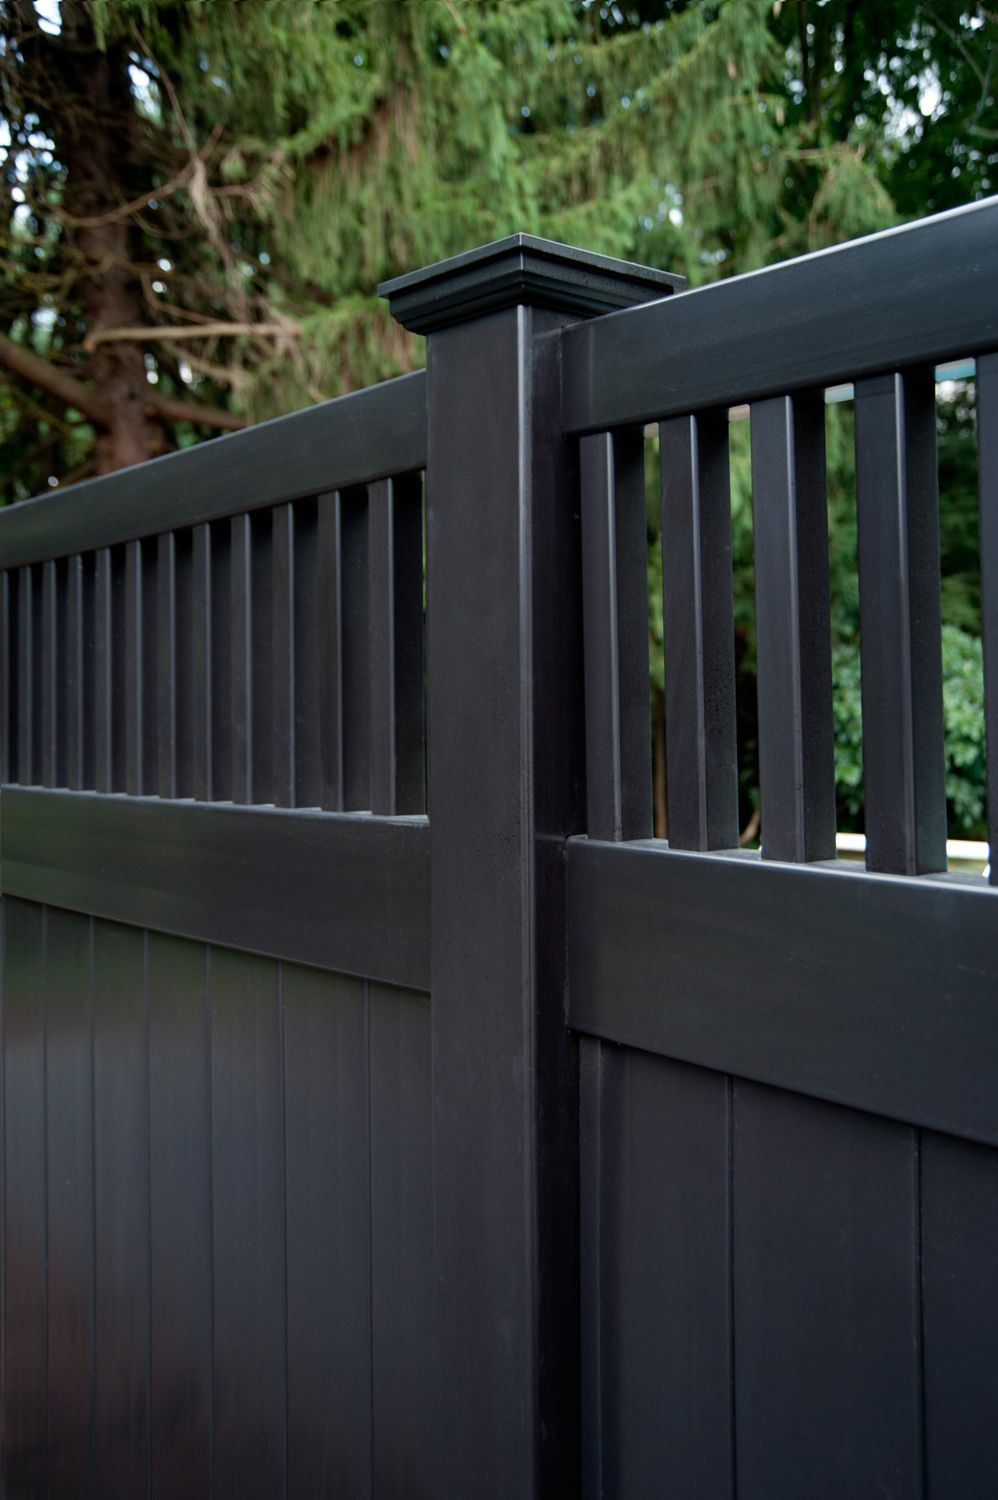 Vinyl privacy fence colors Cream Vinyl Illusions Black Vinyl Pvc Privacy Matte Finish Fencing Panels Images Of Illusions Pvc Vinyl Wood Grain And Color Fence Awesome